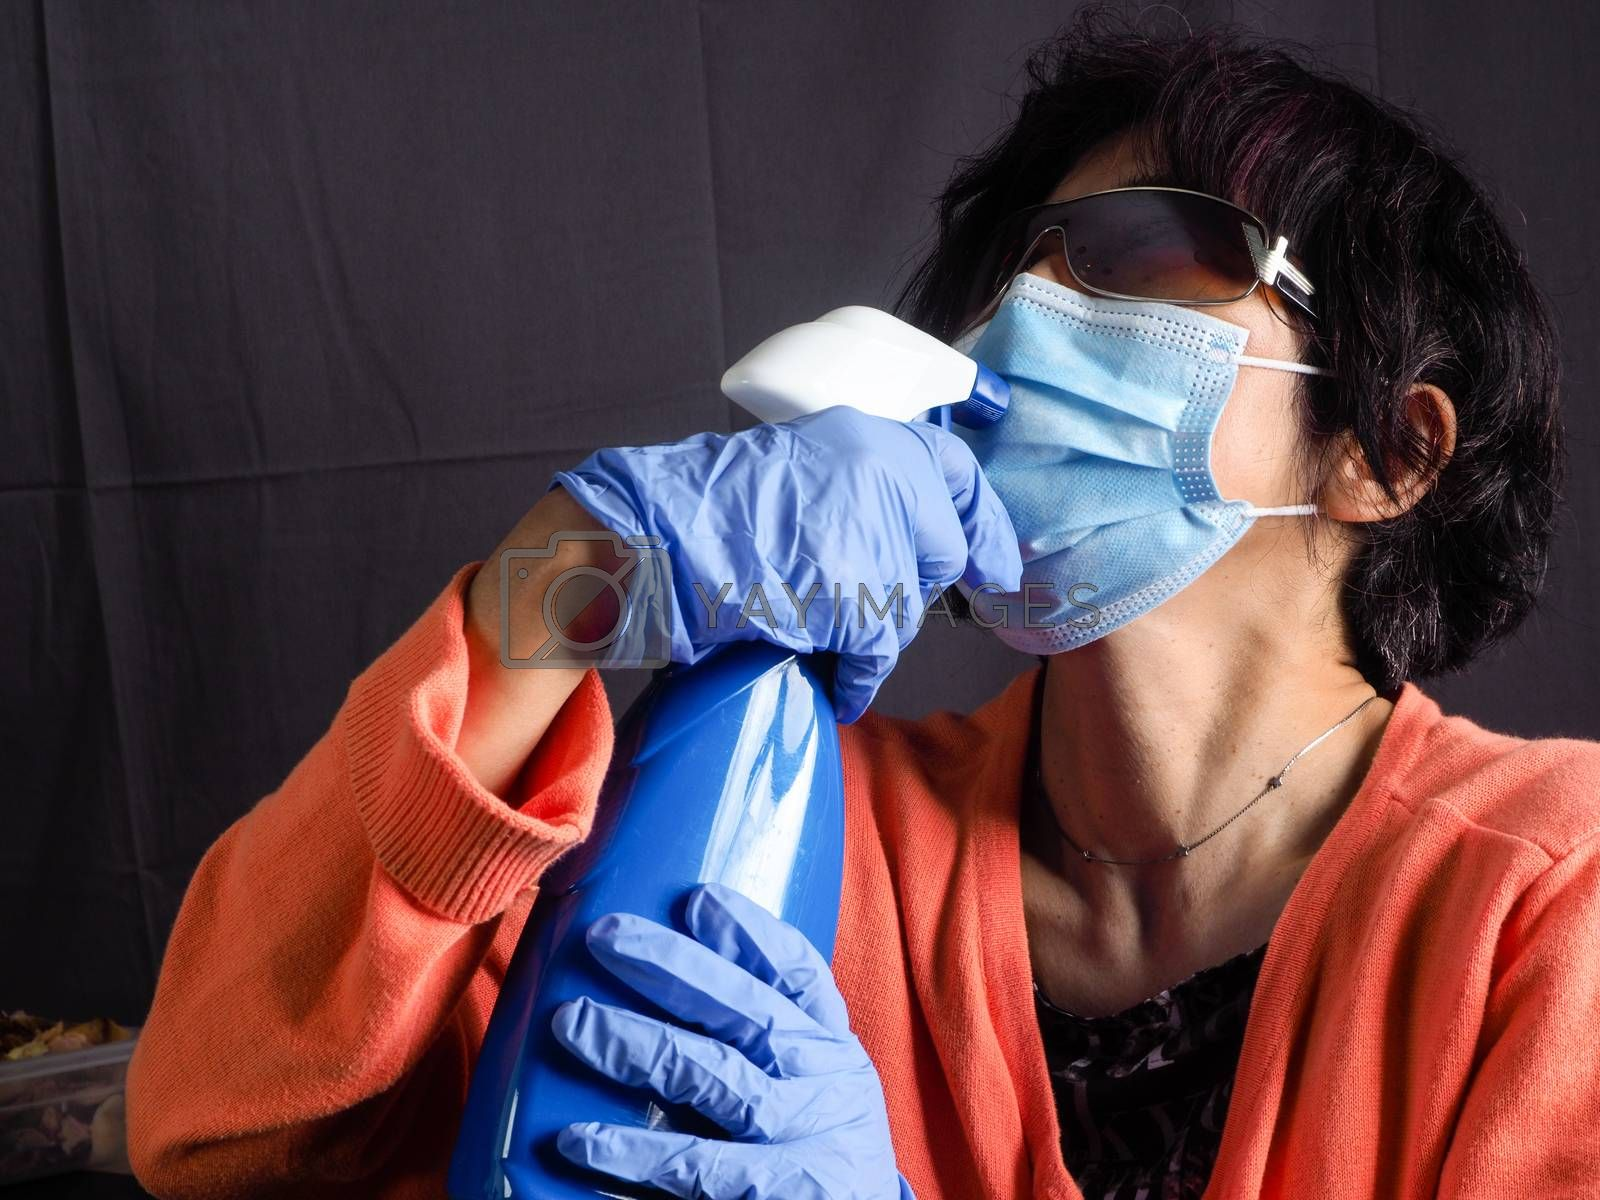 funny humorous adult asian 40s 50s woman wearing protection surgical face mask , blue latex gloves, and sun glasses pointing the head with blue sanitizer cleaning  bottle as a weapon as tired of confinement covid concept.